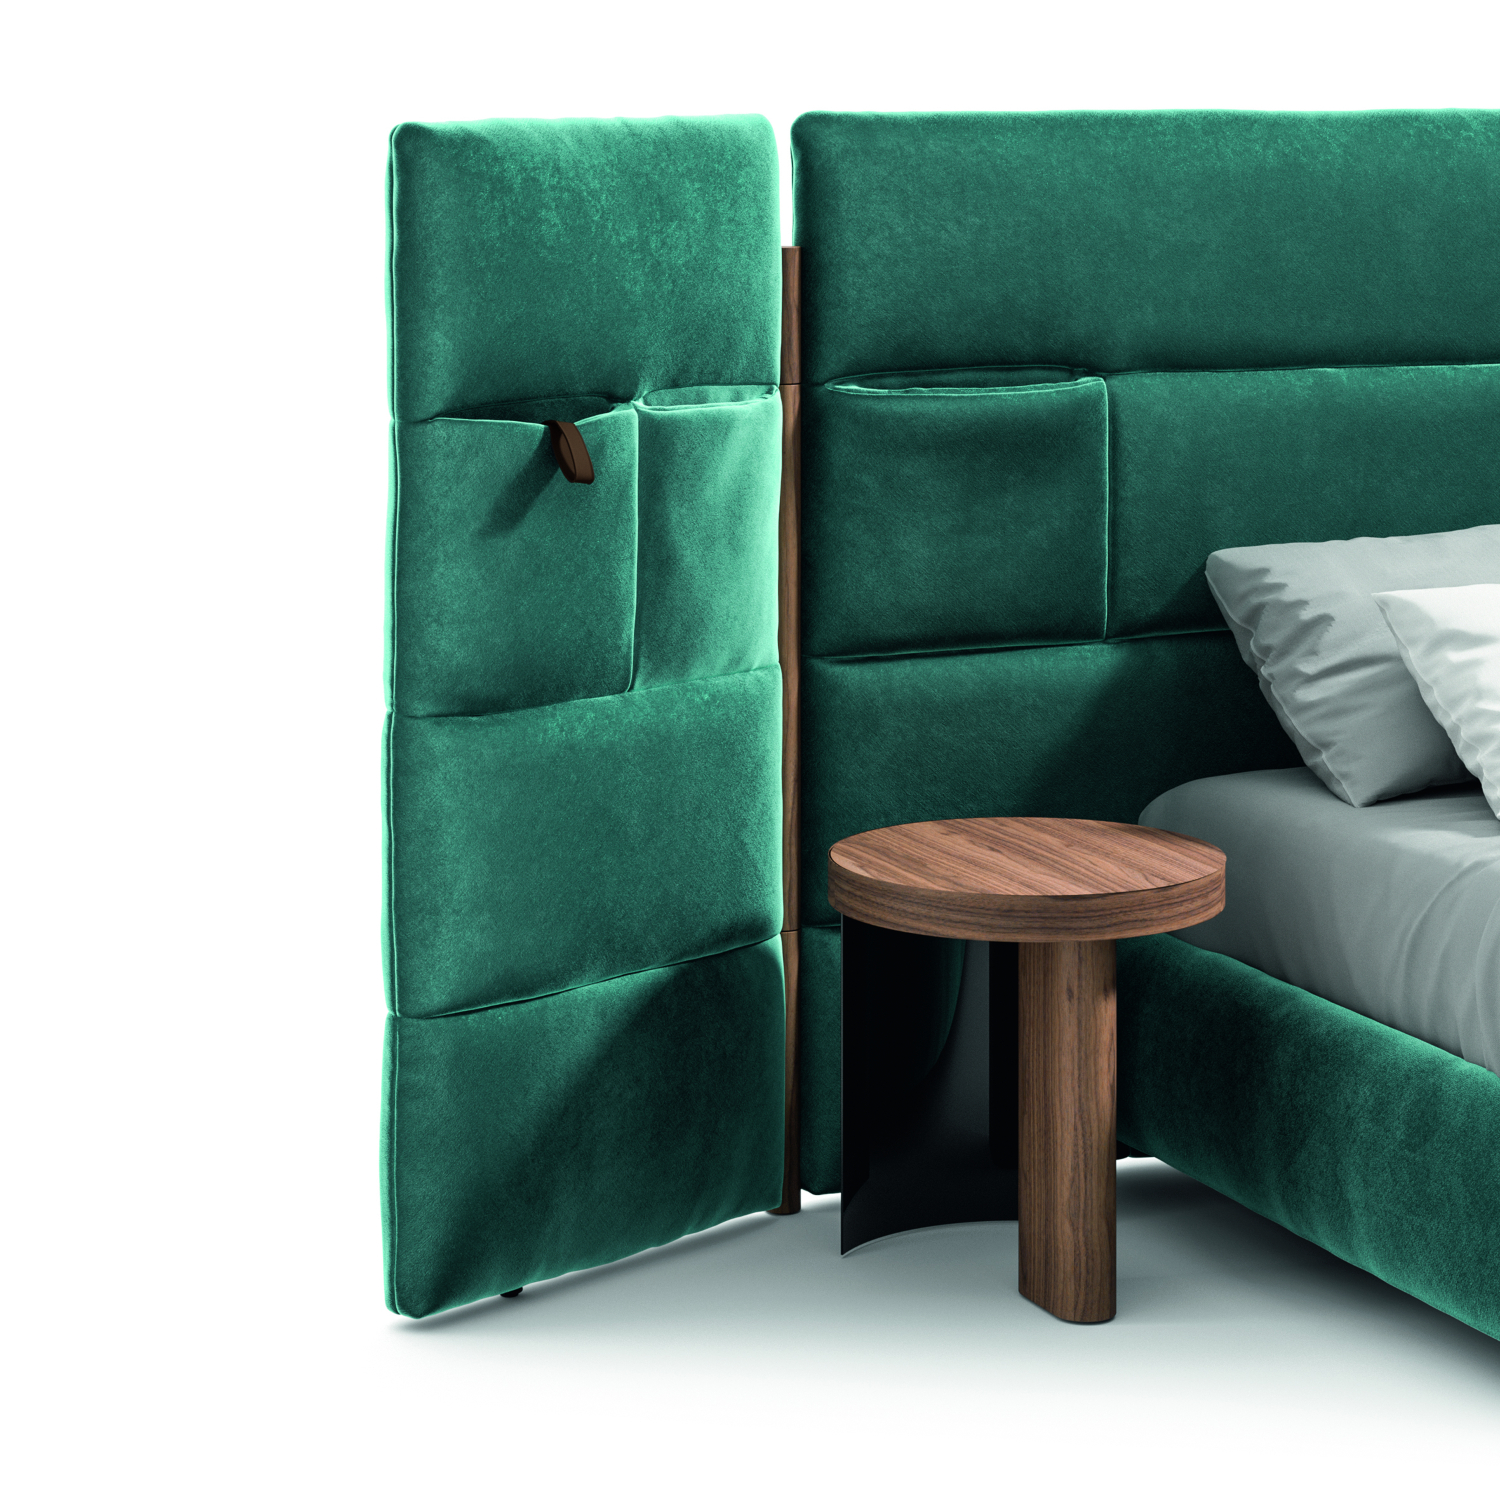 CASSINA Perspective at night 02